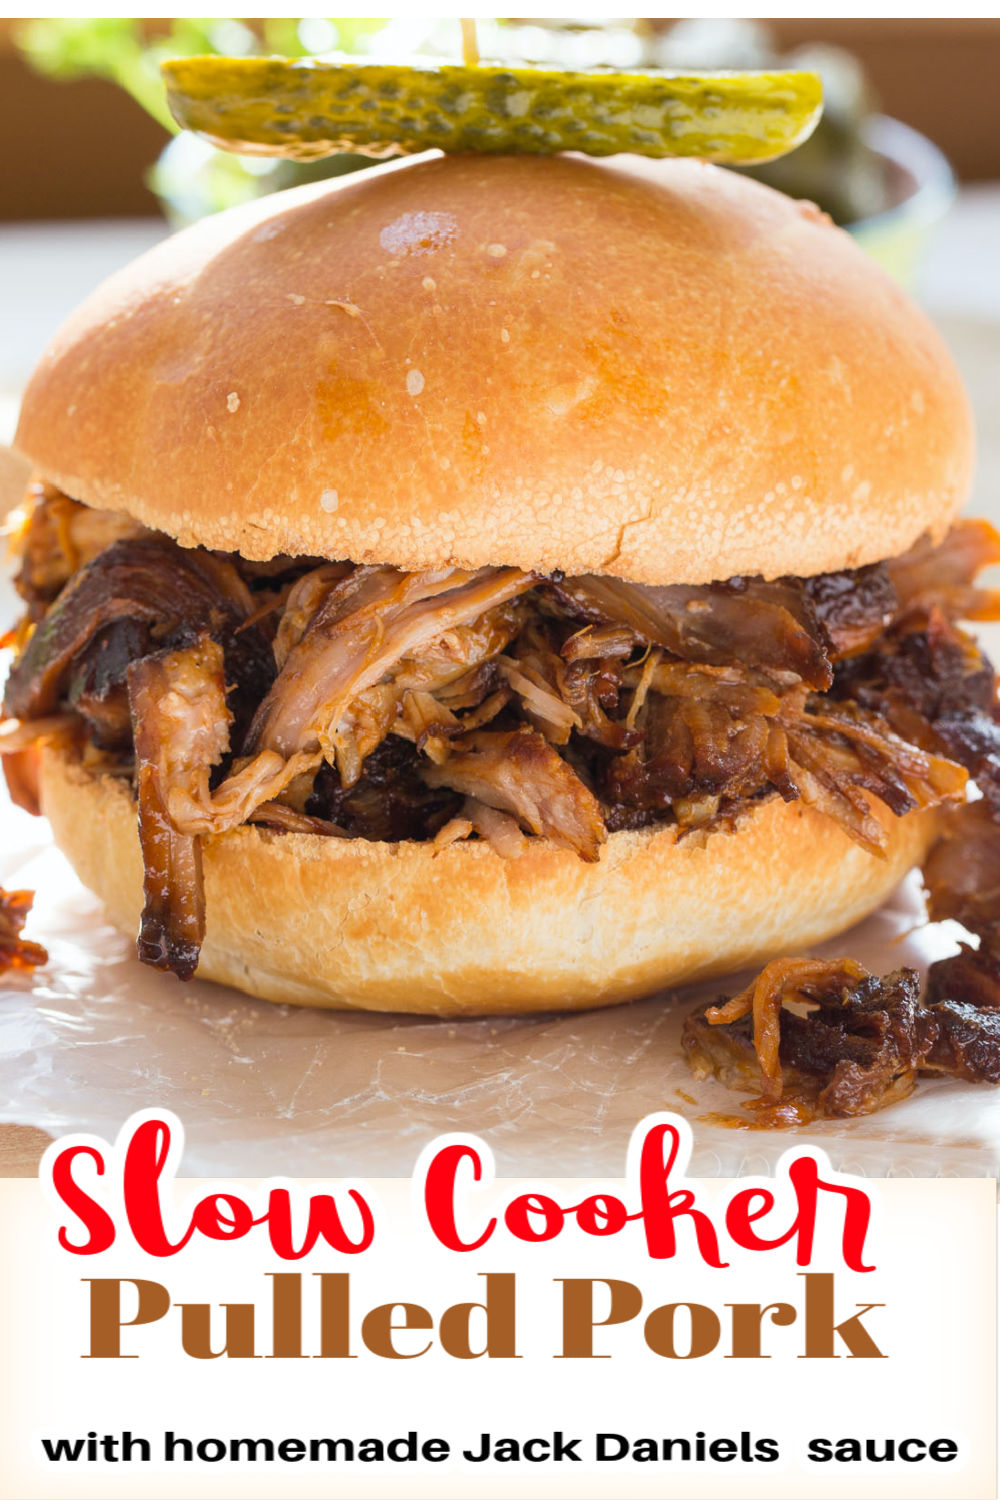 Slow Cooker Pulled Pork is great to feed a crowd. Tender and delicious with  homemade Jack Daniels BBQ sauce. via @artandthekitch